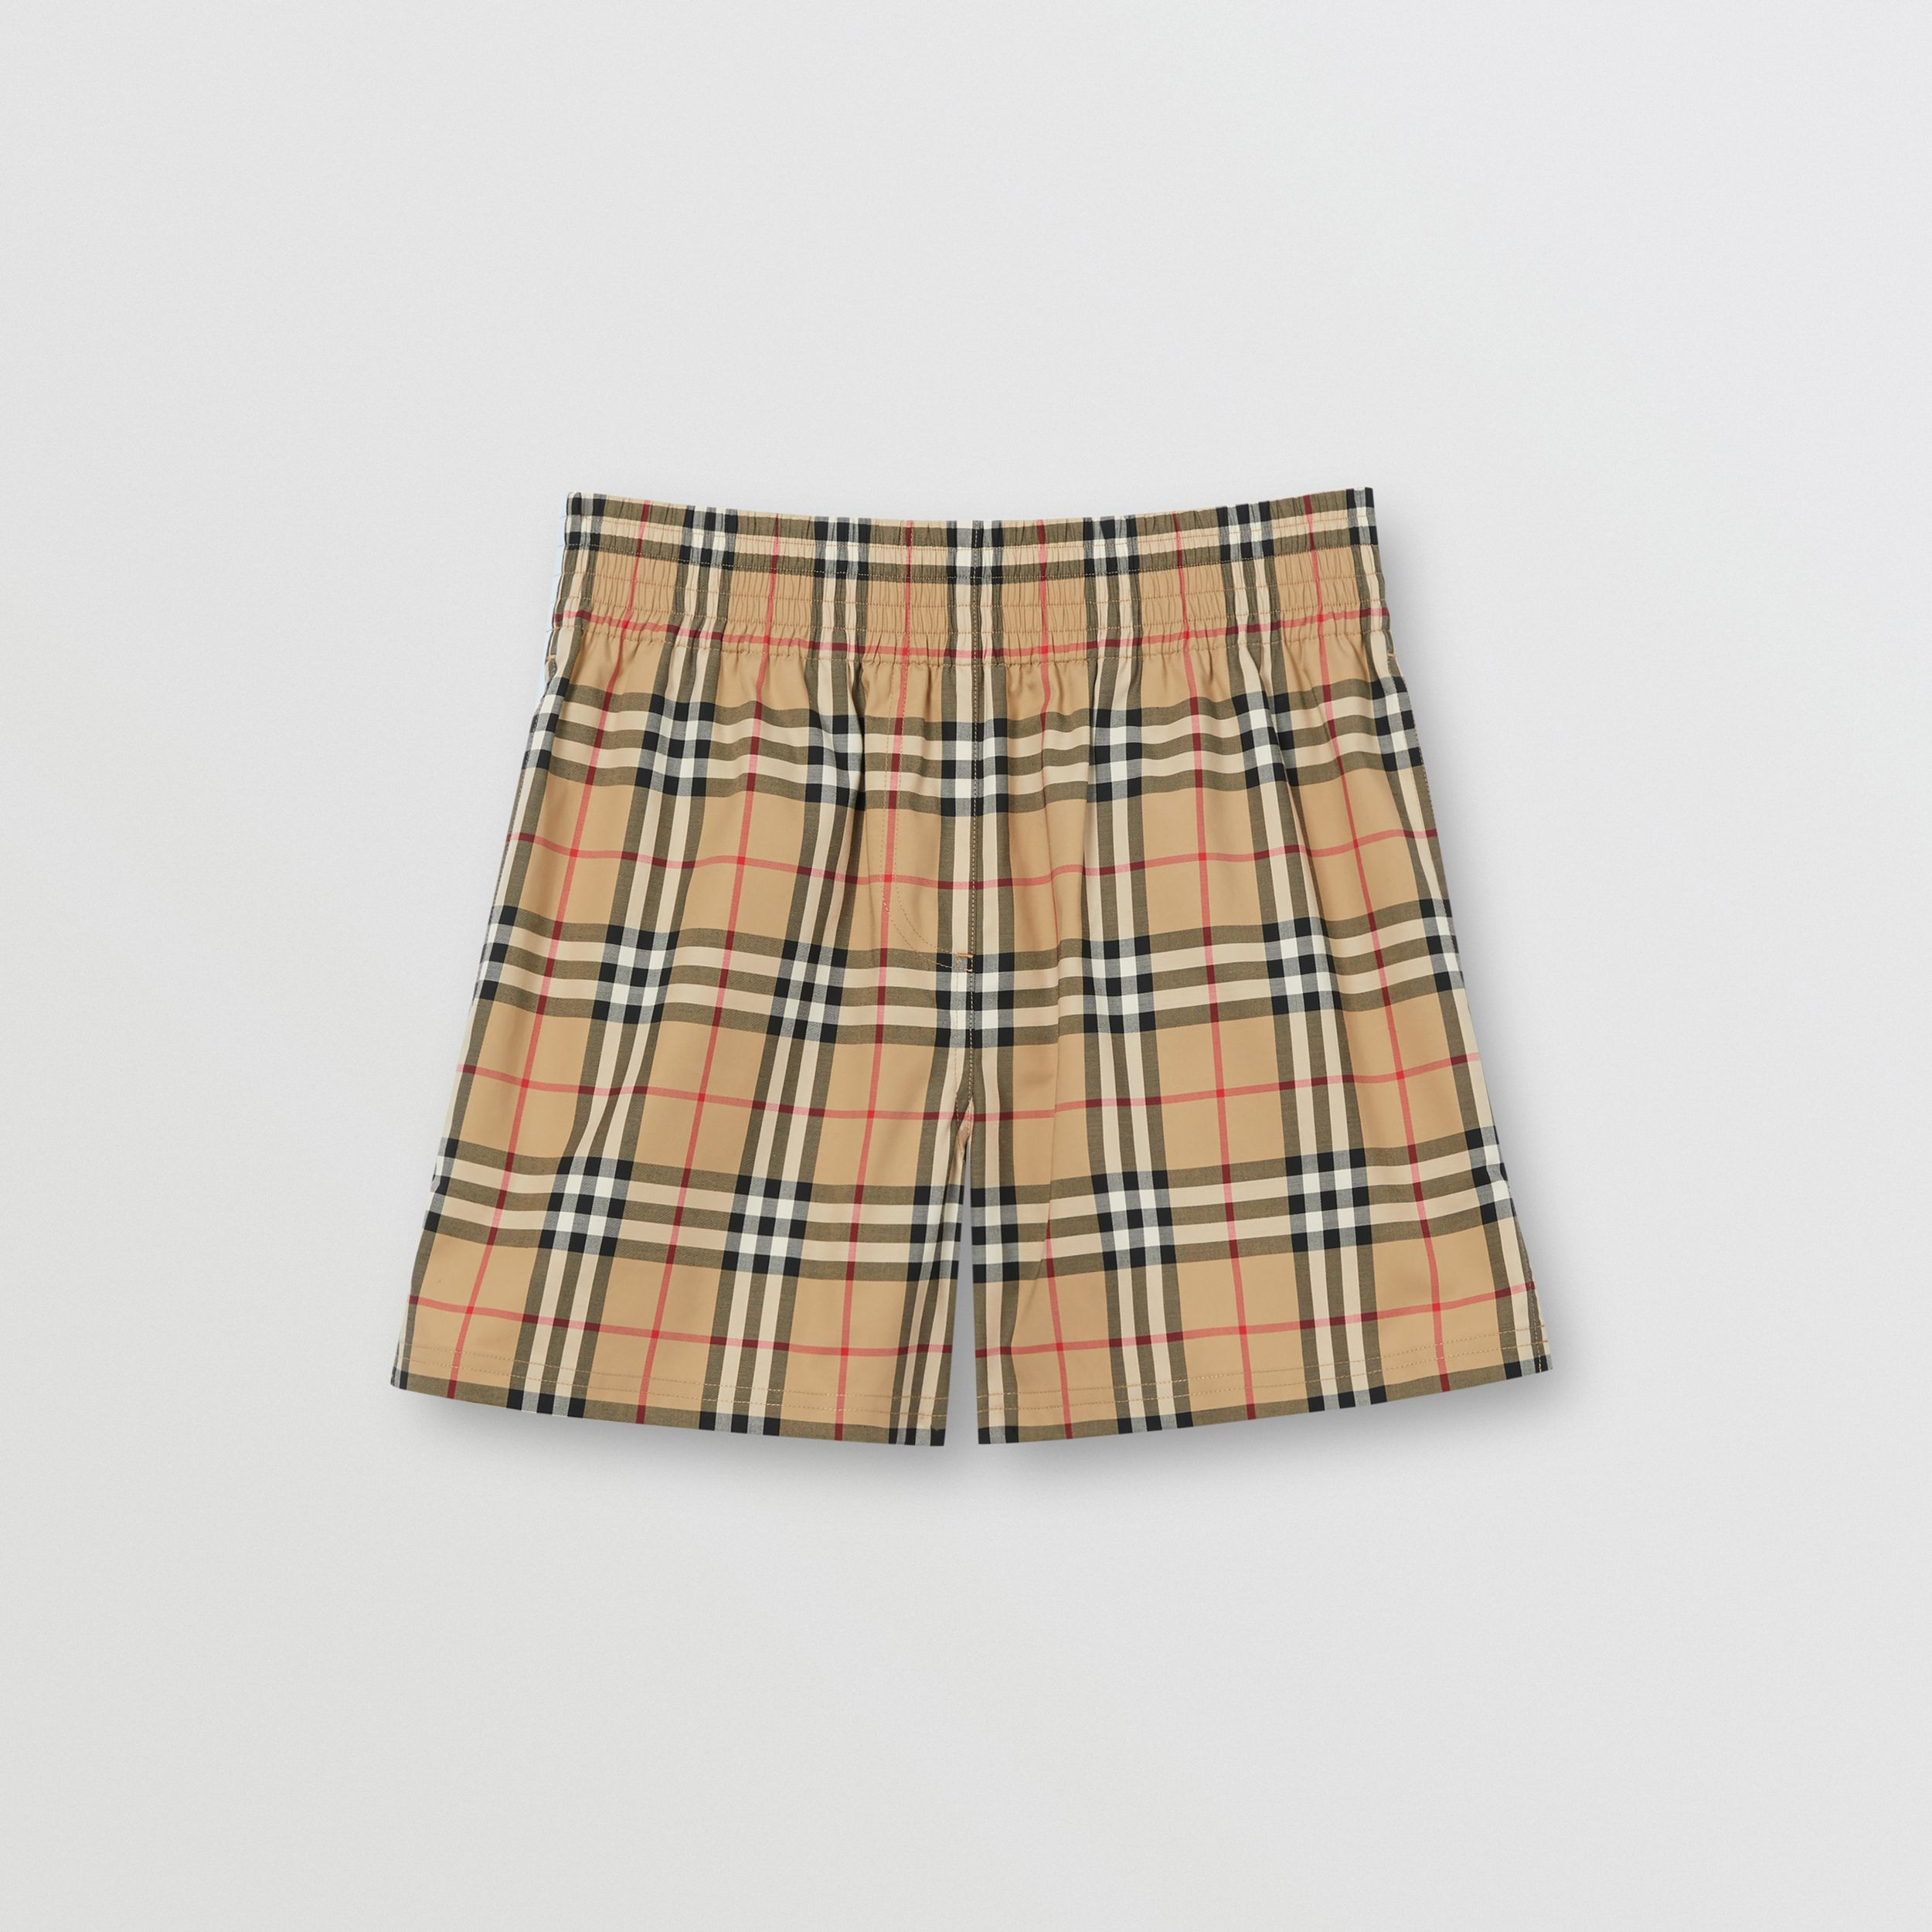 Vintage Check Stretch Cotton Shorts in Archive Beige - Women | Burberry - 4